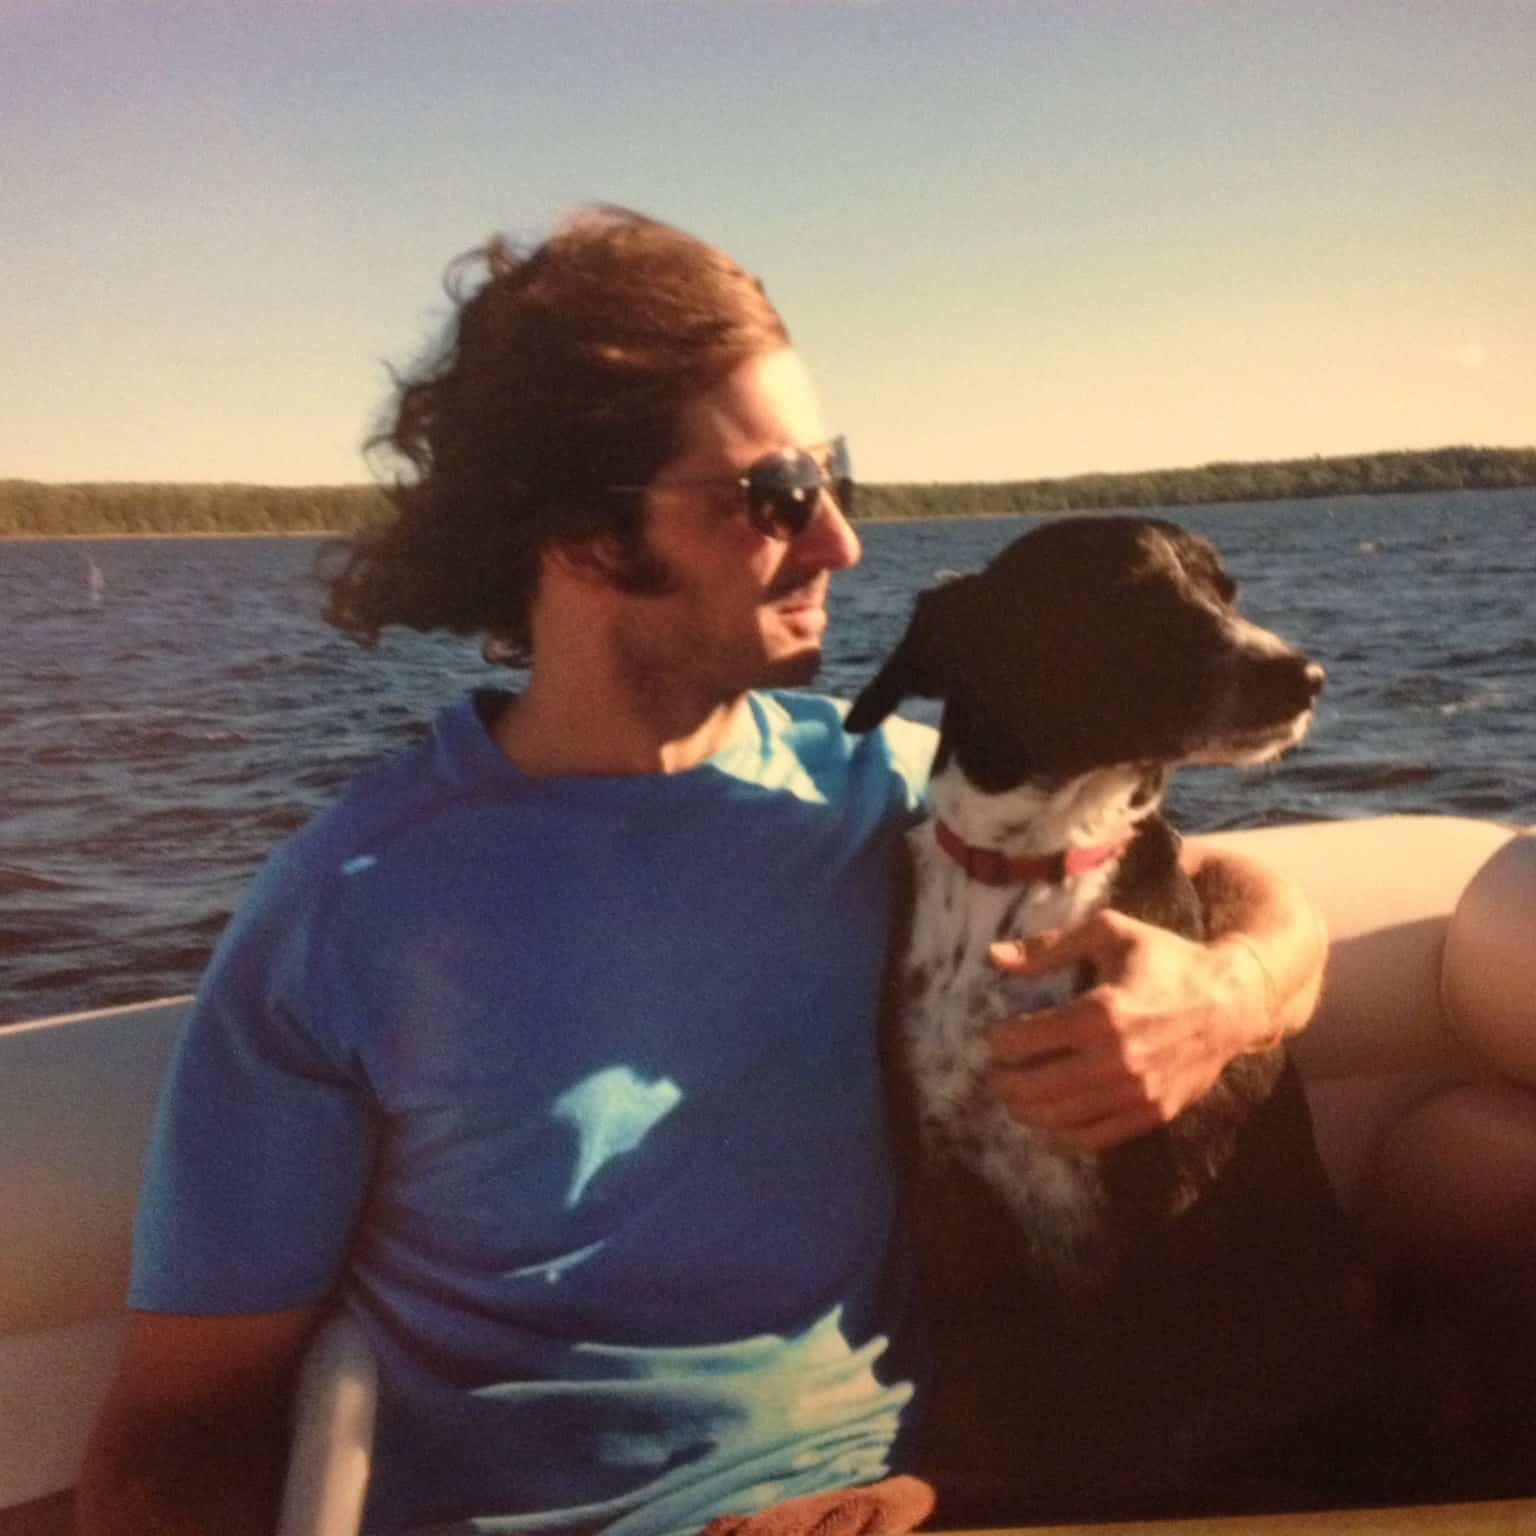 Will and hist dog Murphy in a boat